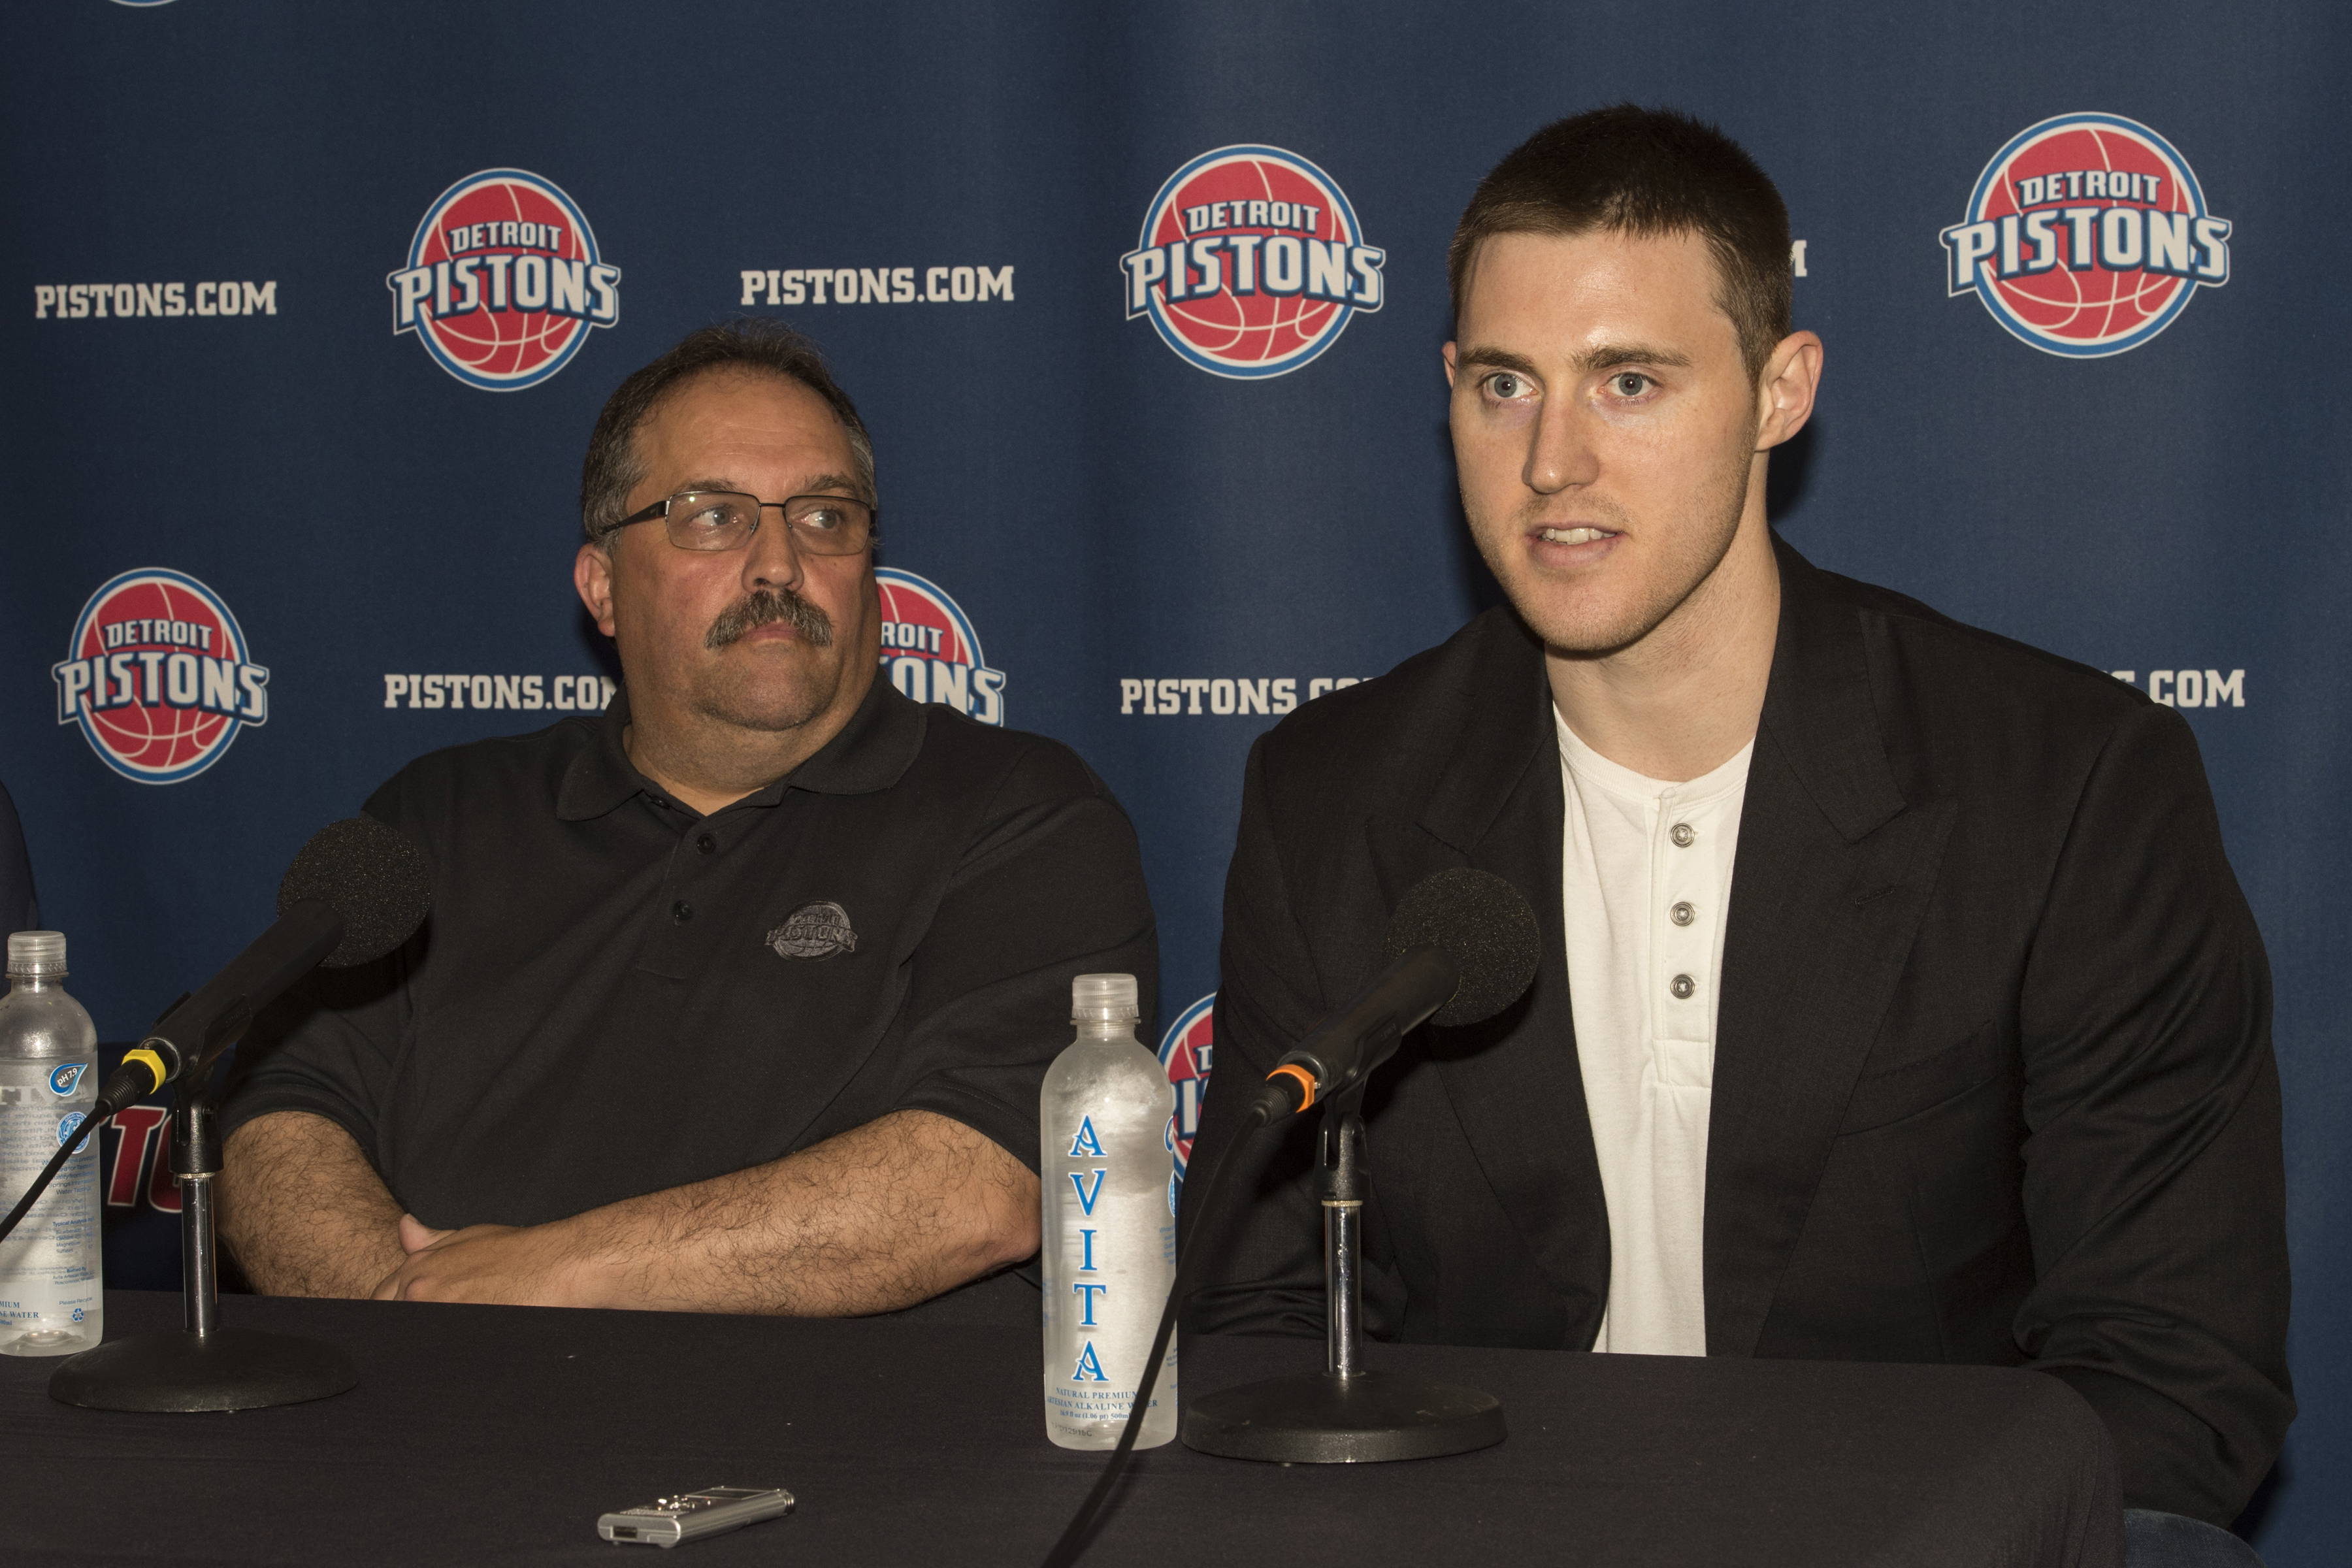 Detroit Pistons Introduce New Players